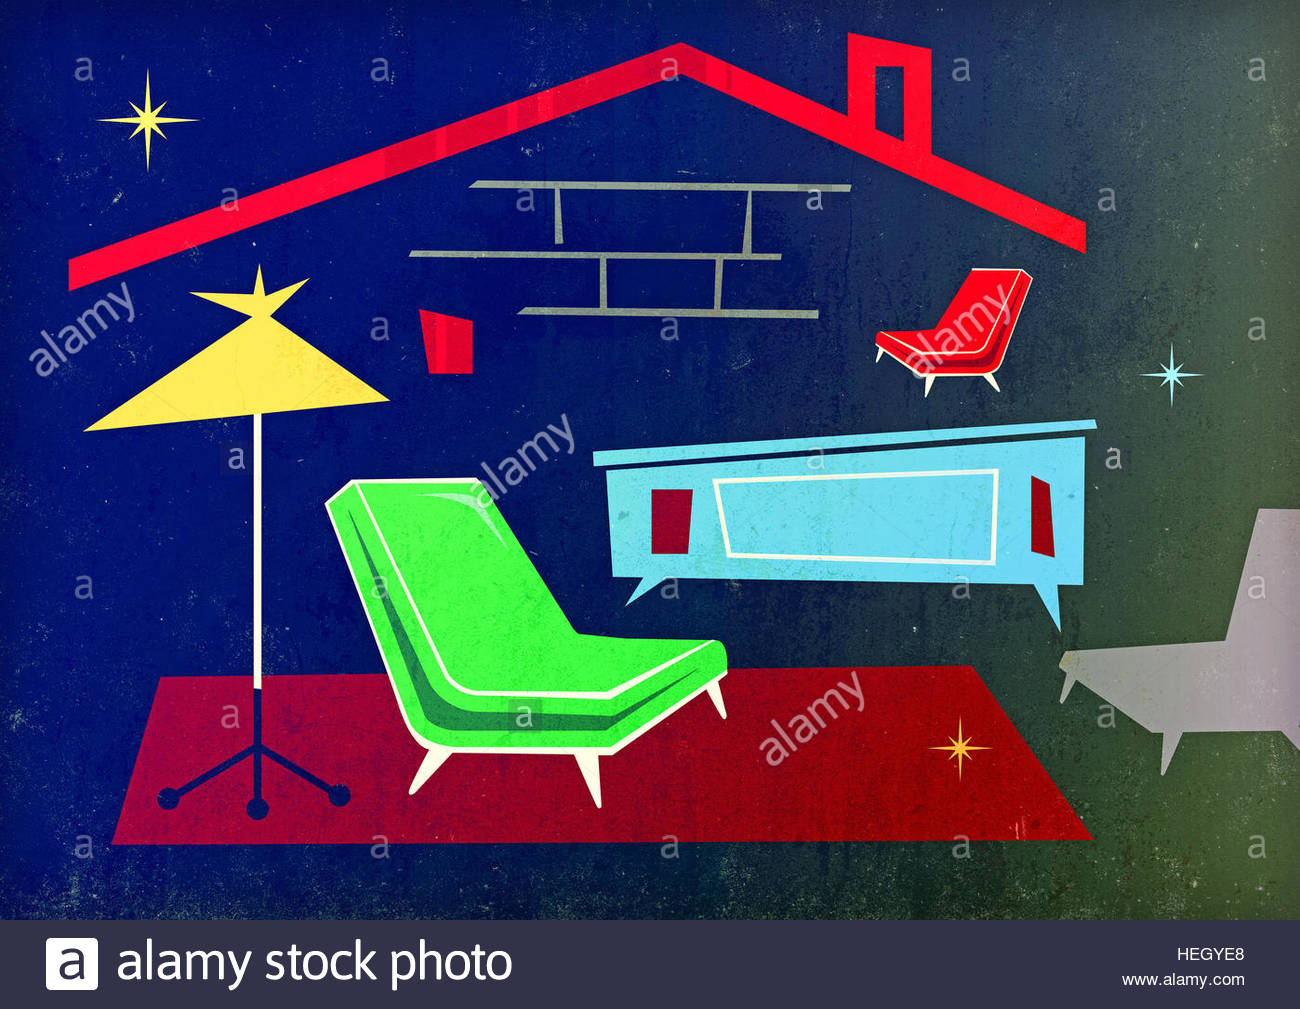 Mid century home retro illustration furniture house domestic lifestyle - Stock Image